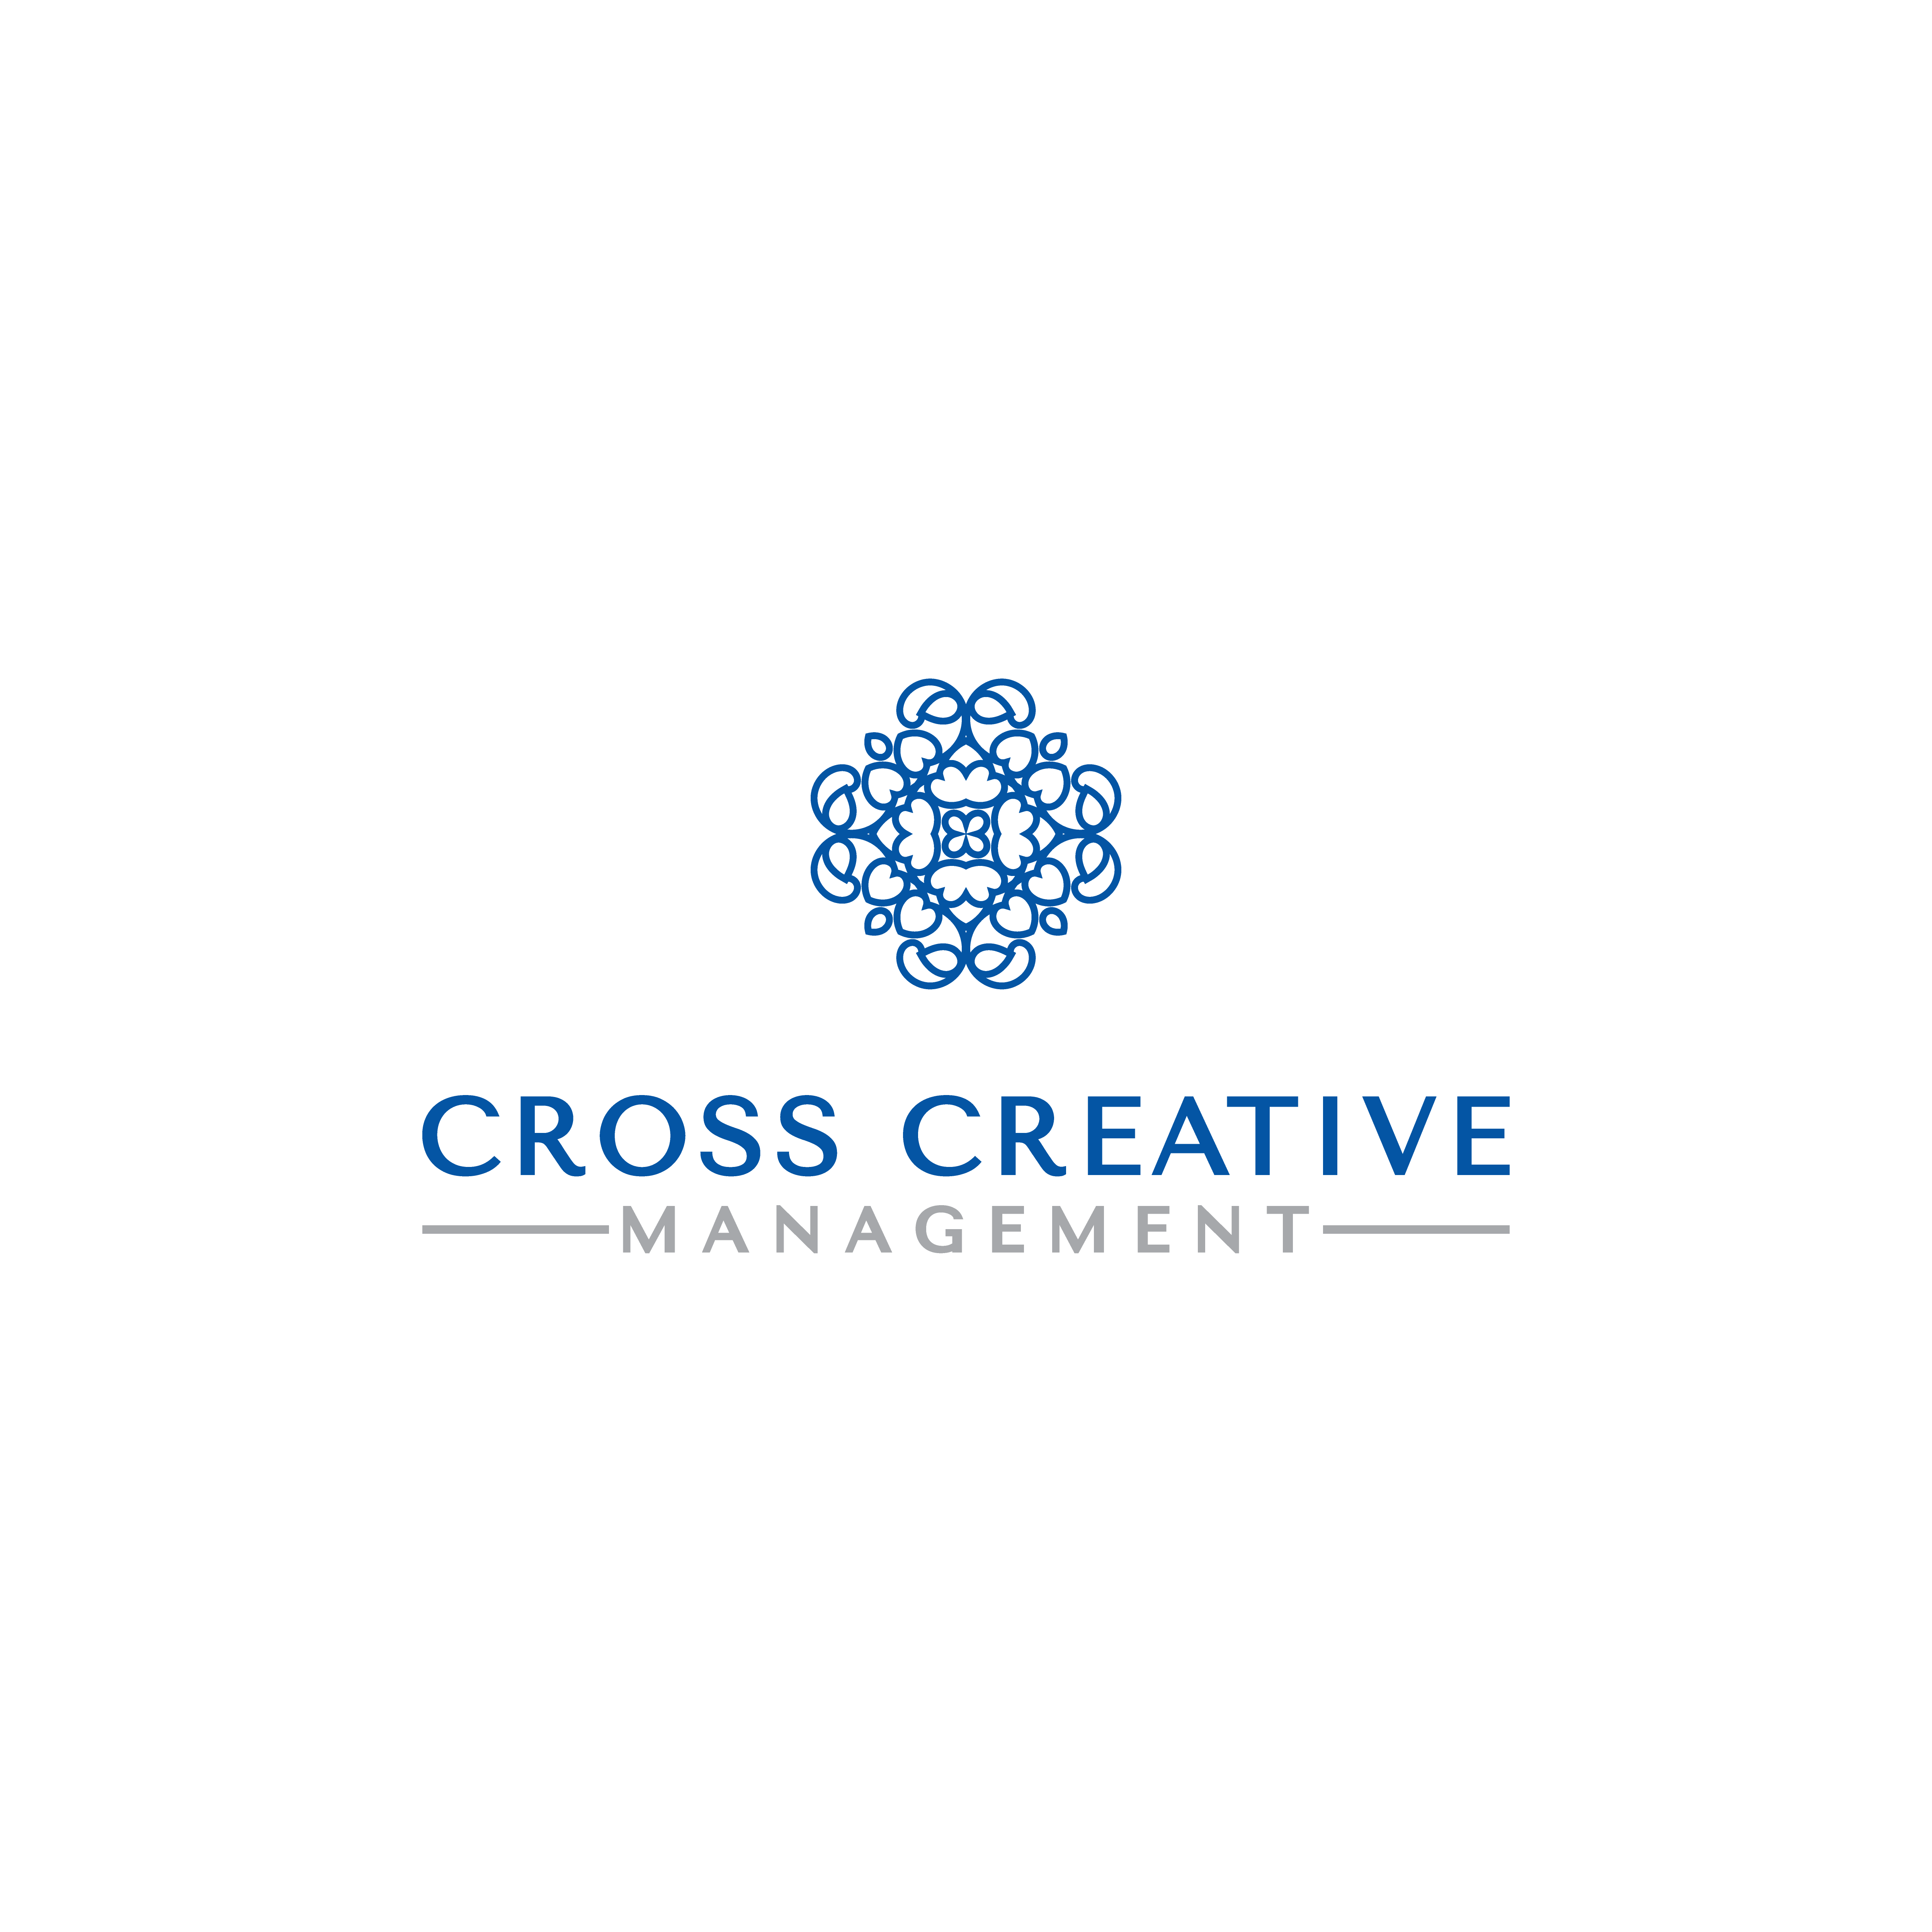 Fun, Creative, but Powerful and Sophisticated logo